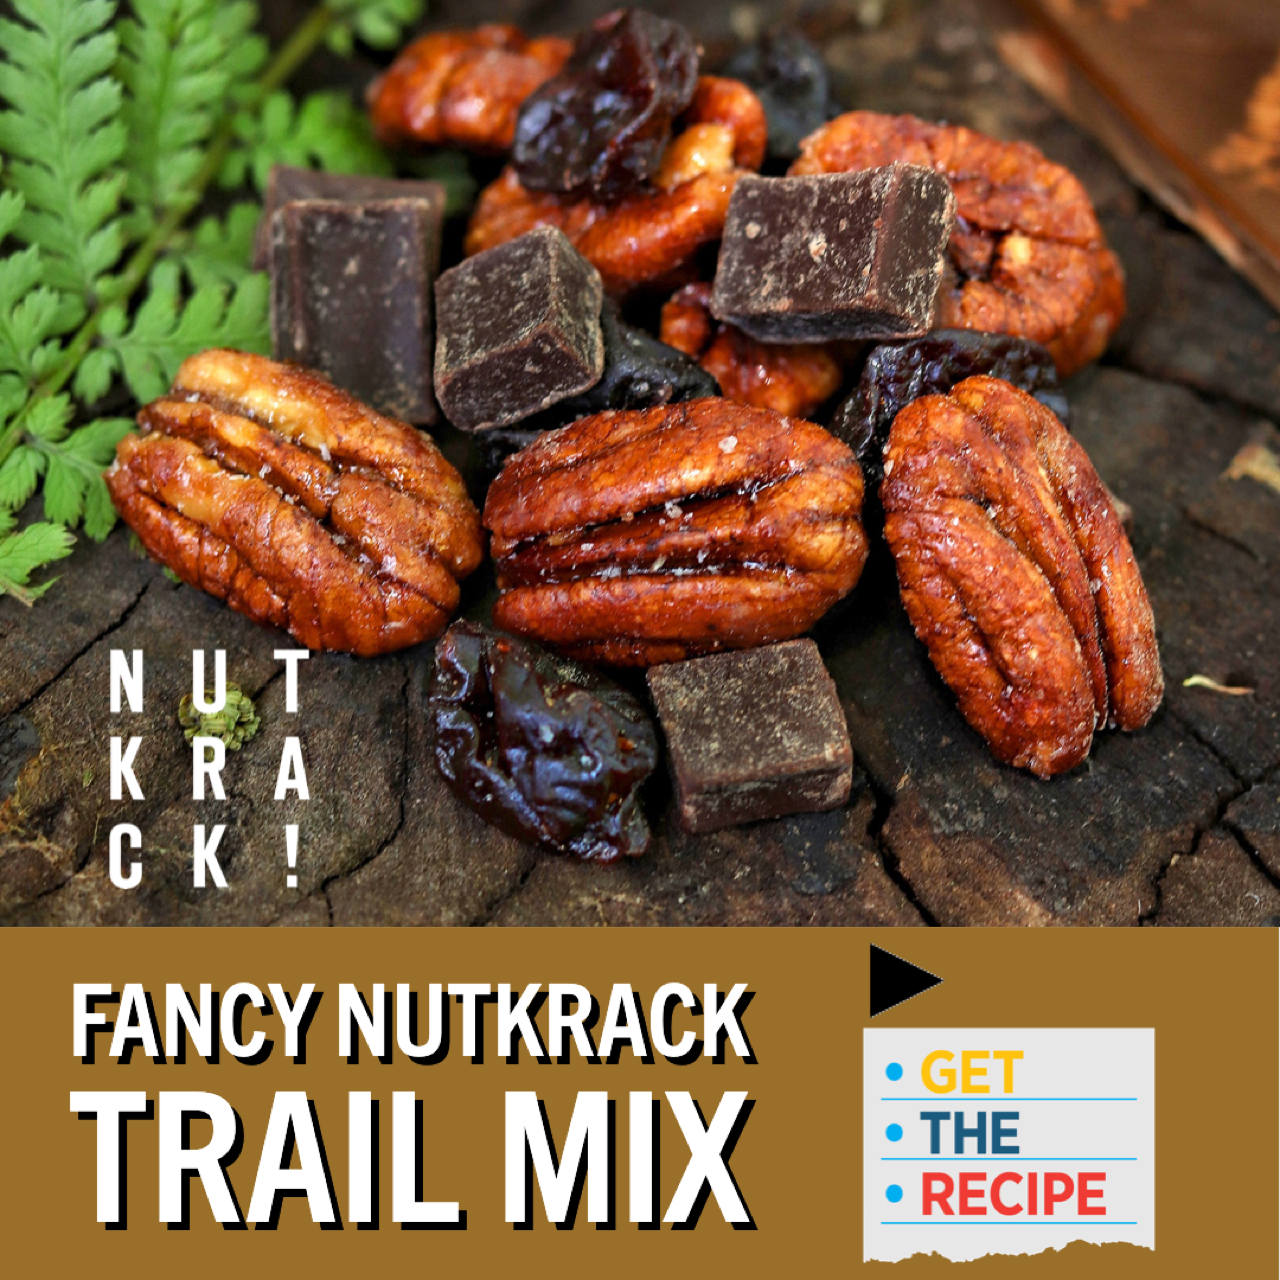 RECIPE: Nutkrack Trail Mix-Candied Pecans in the wild!